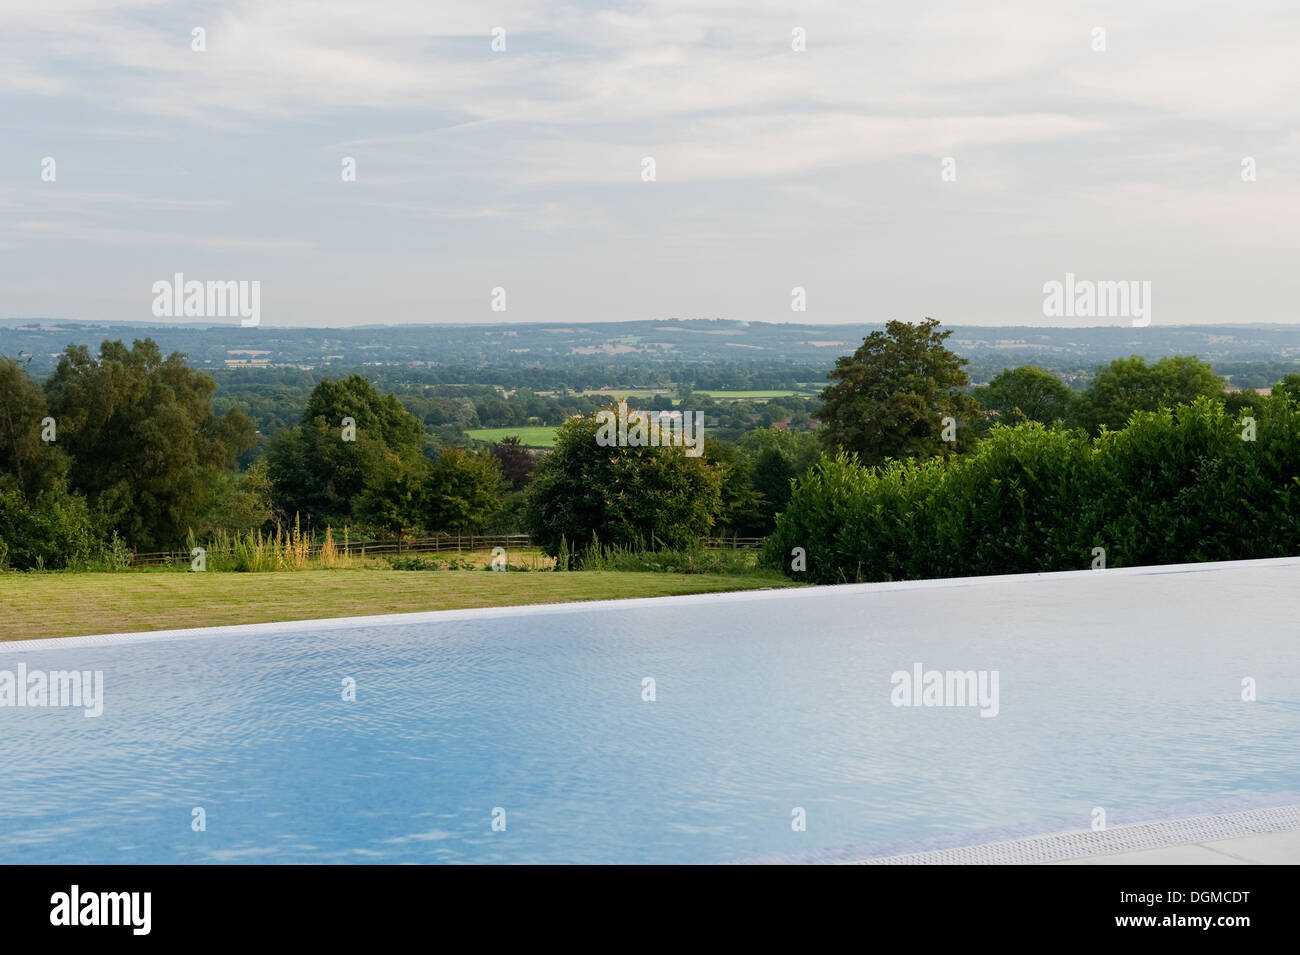 Infinity pool in British countryside - Stock Image